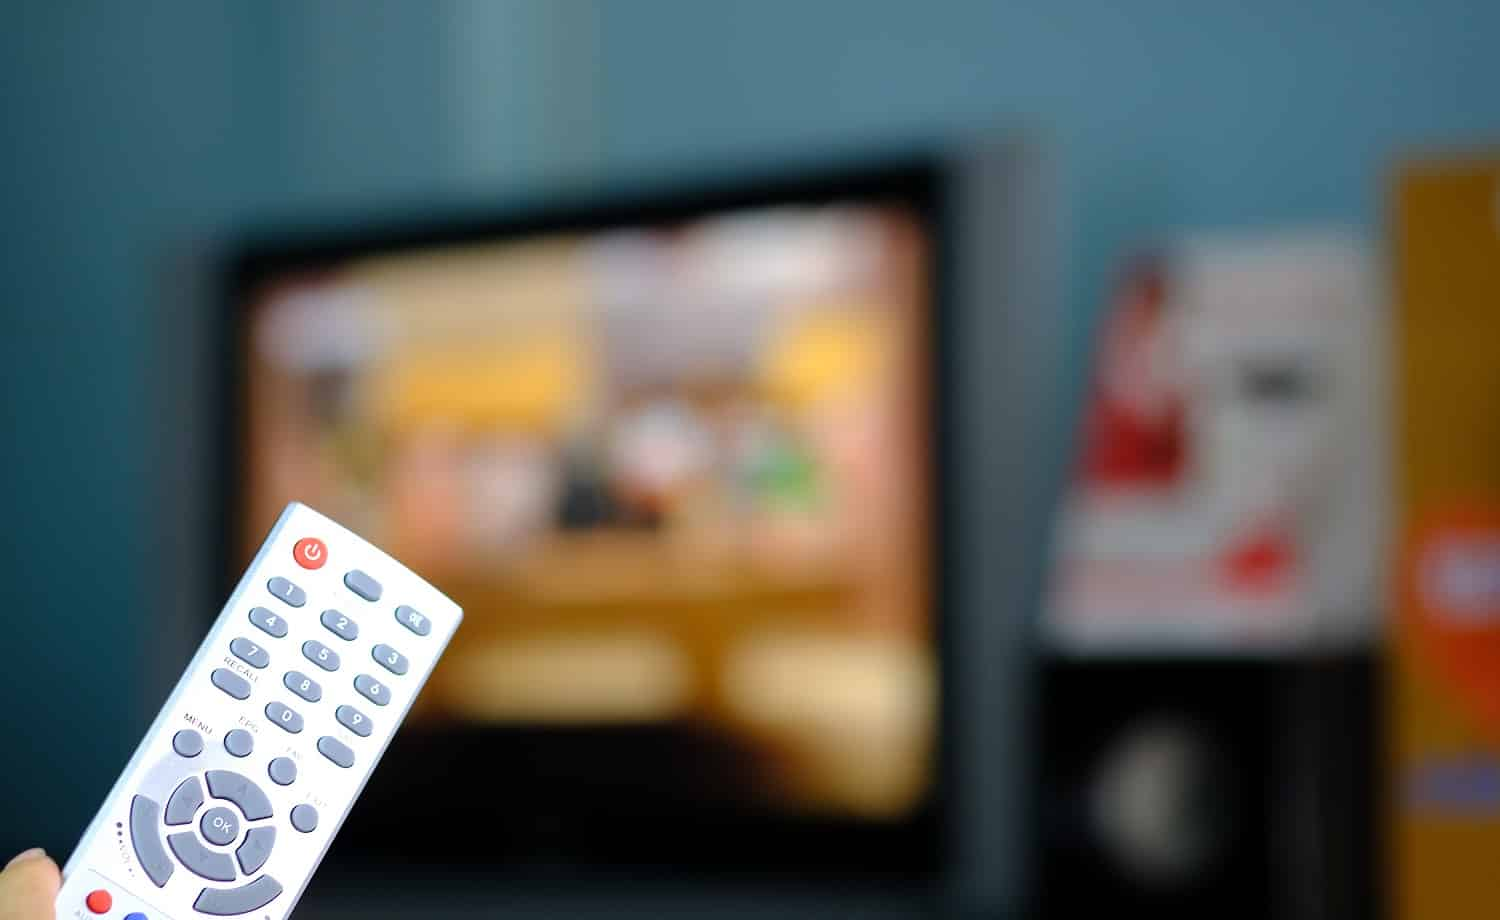 remote control satellite receiver holdig in hand for change channel blurred television background.